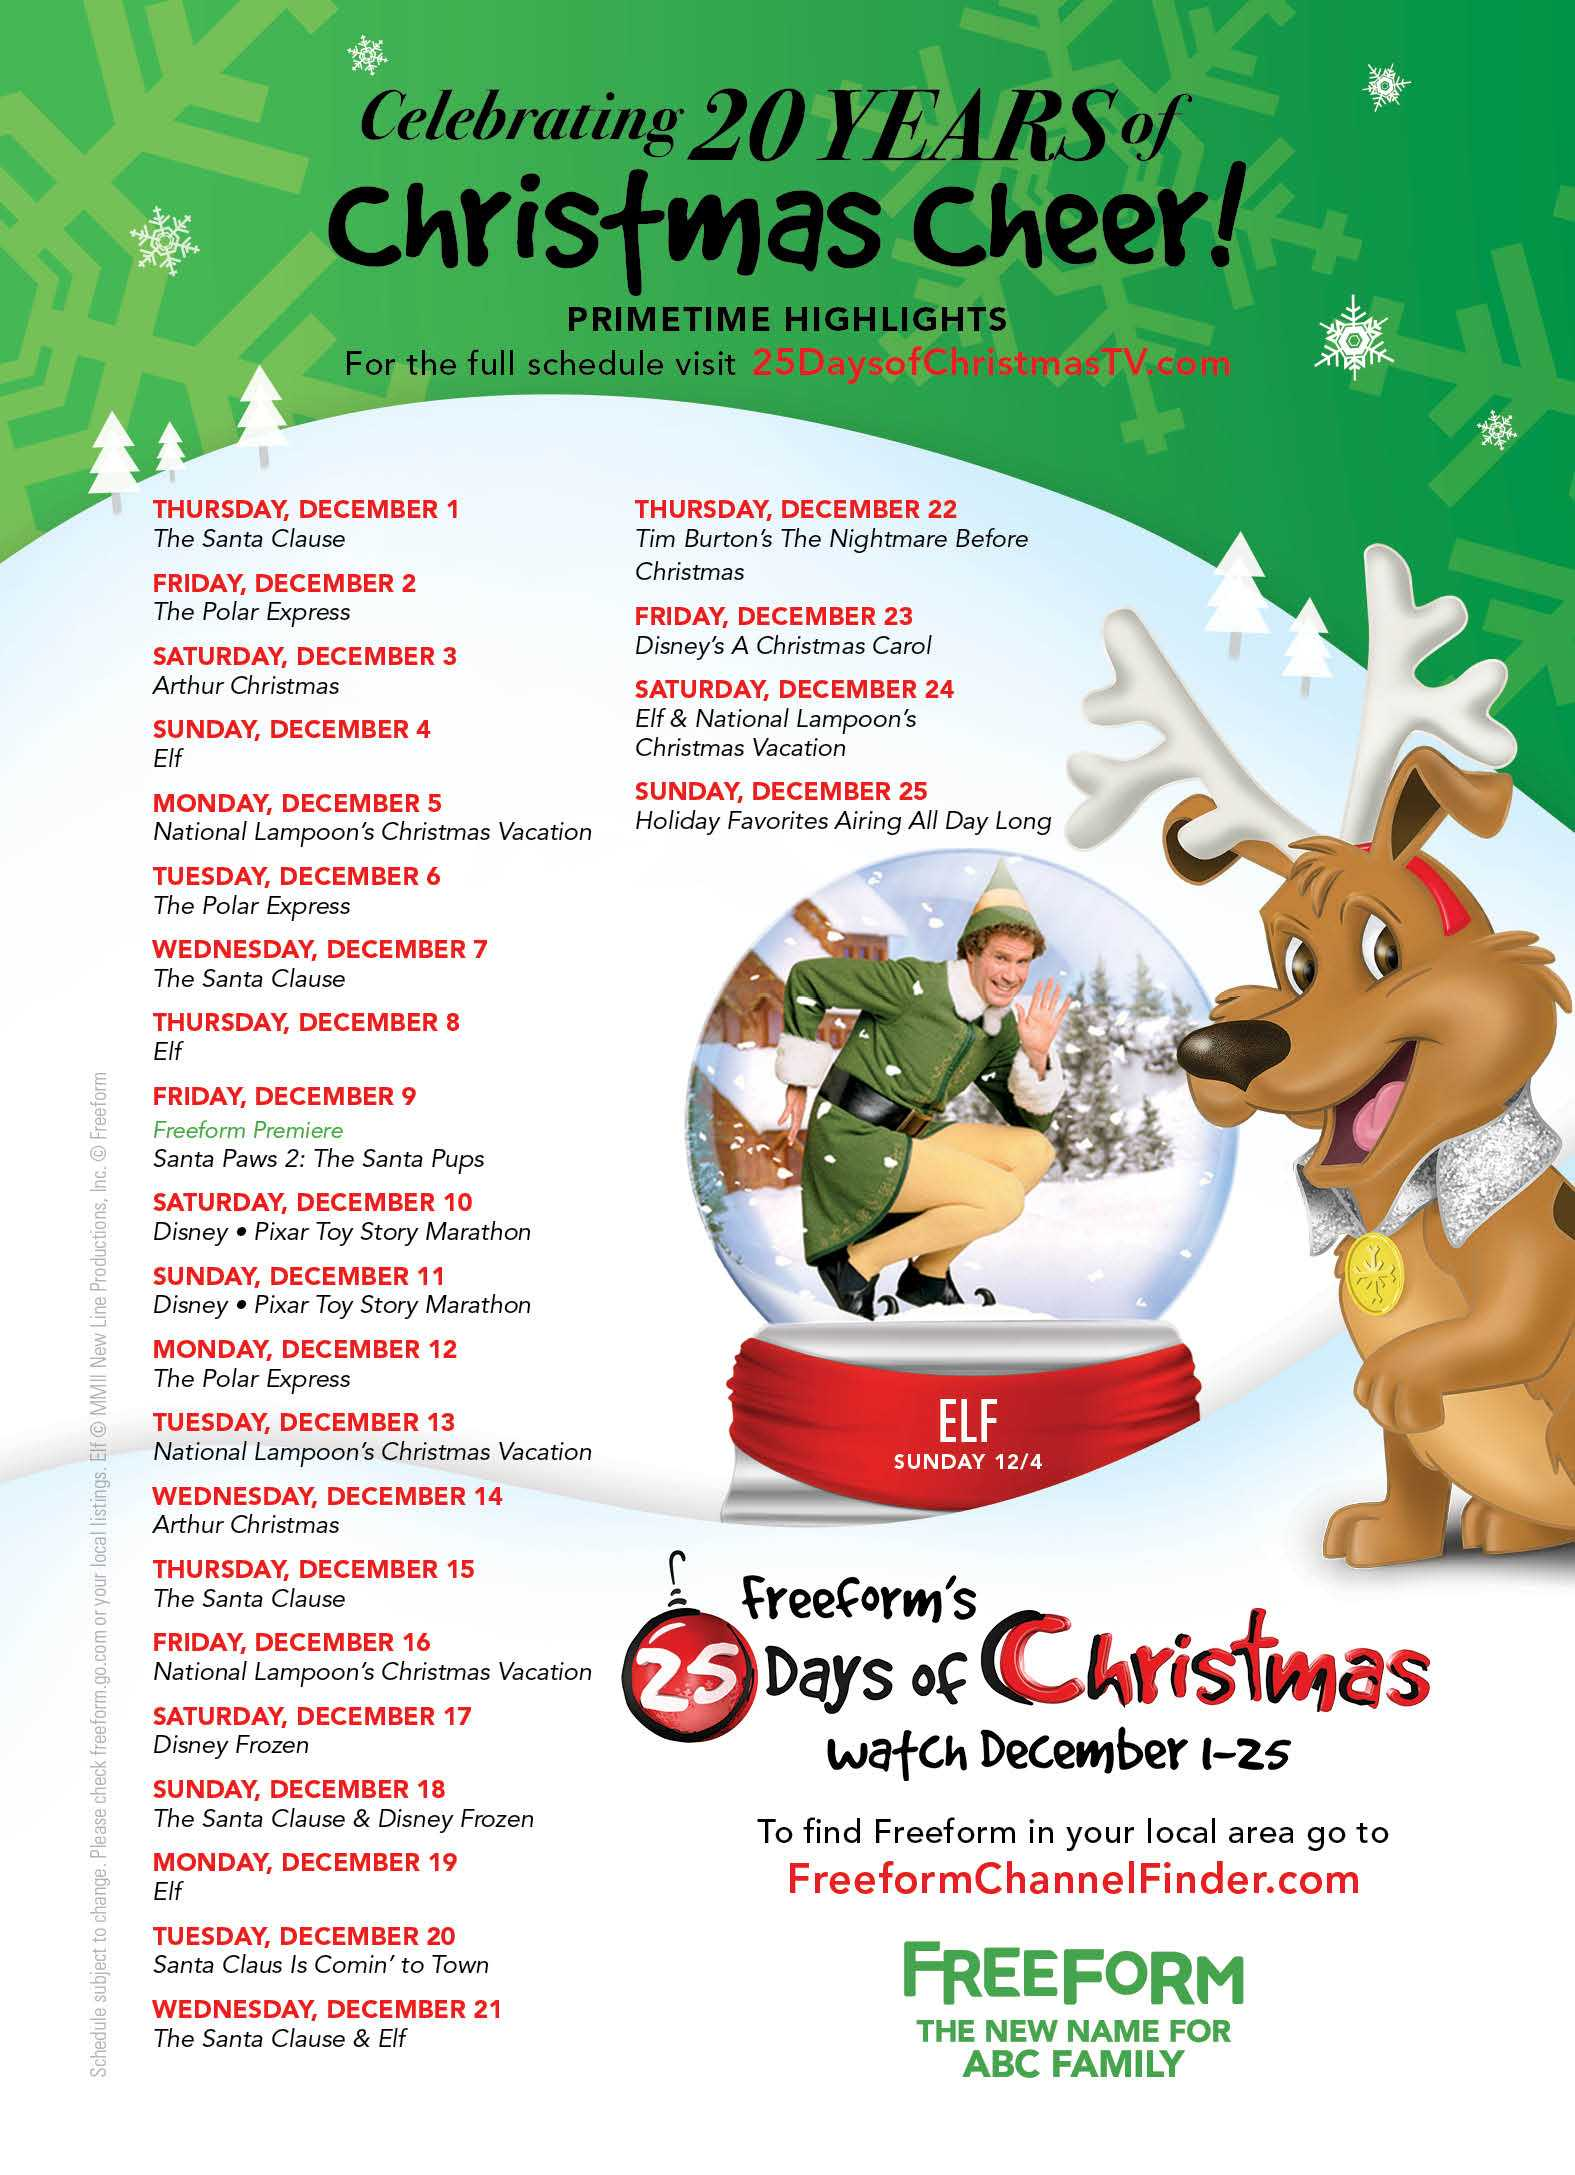 Freeform Releases Its 25 Days Of Christmas Schedule | Freeform